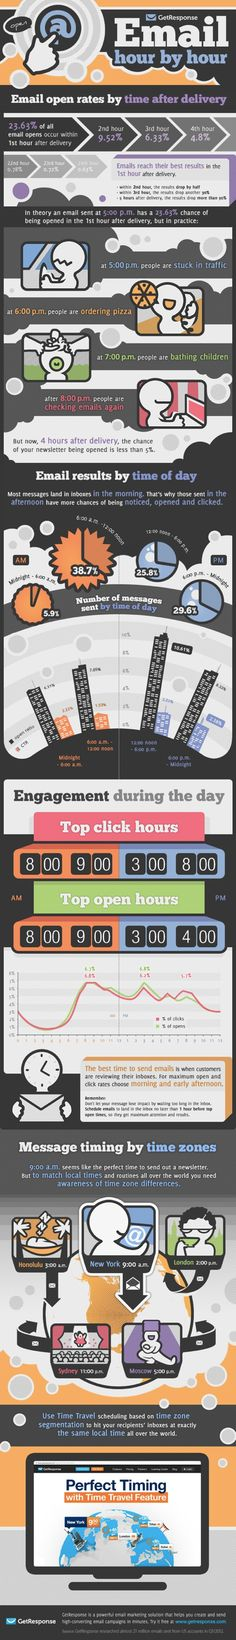 email hour by hour